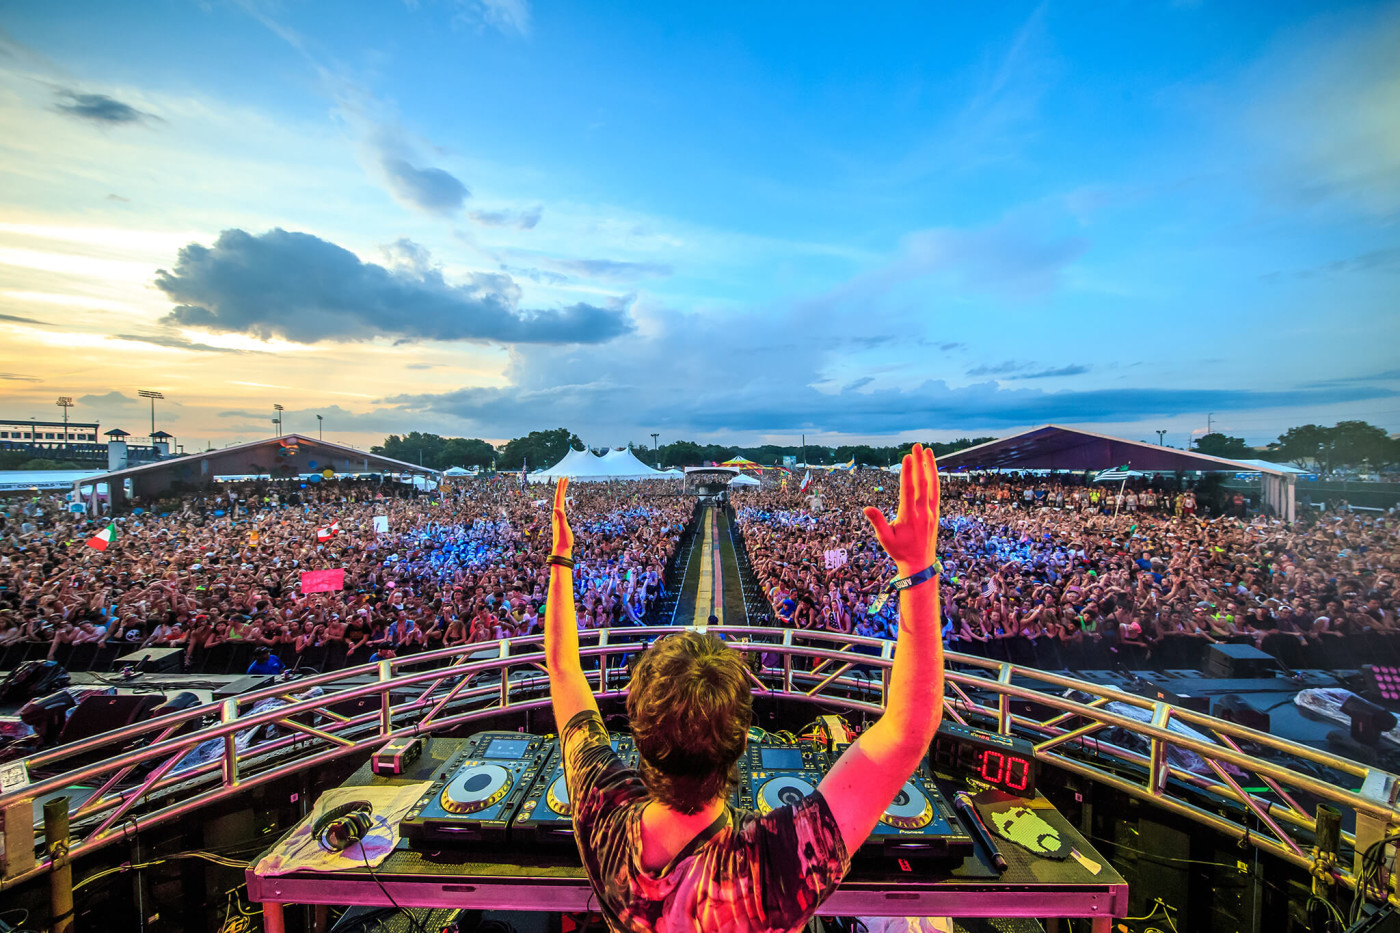 Oliver Heldens performing on main stage at Sunset Music Festival 2015